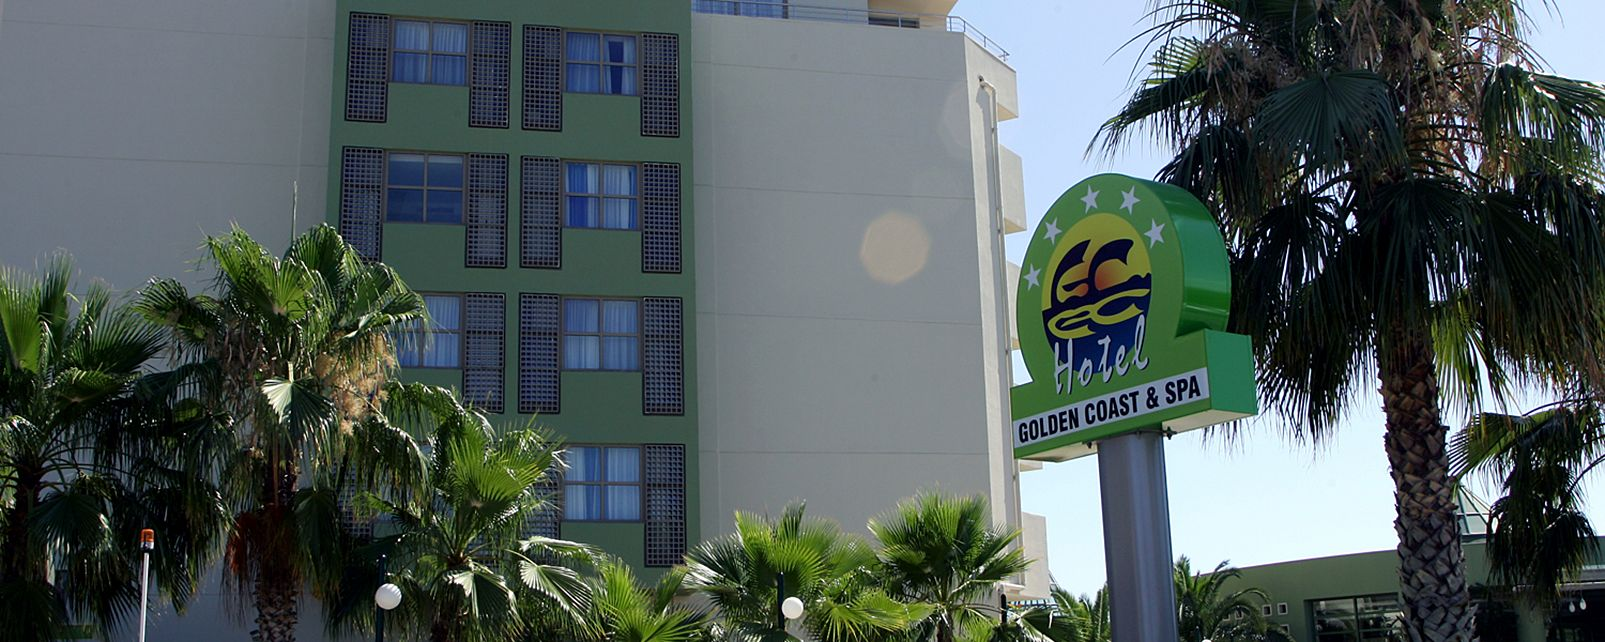 Hotel Golden Coast